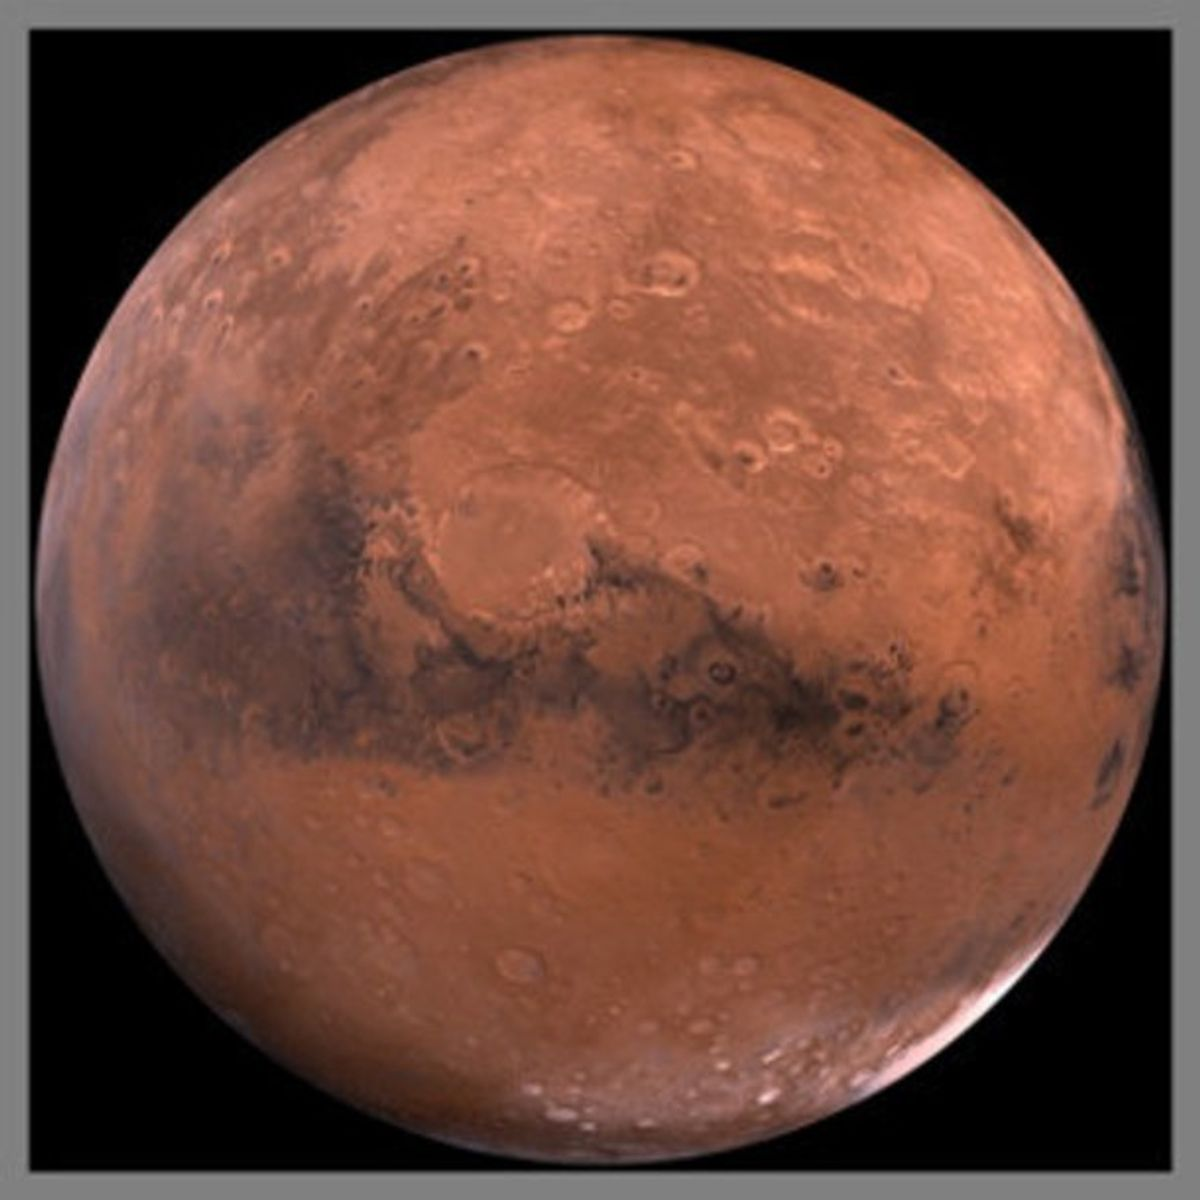 Mars: What's Your Battle Cry?